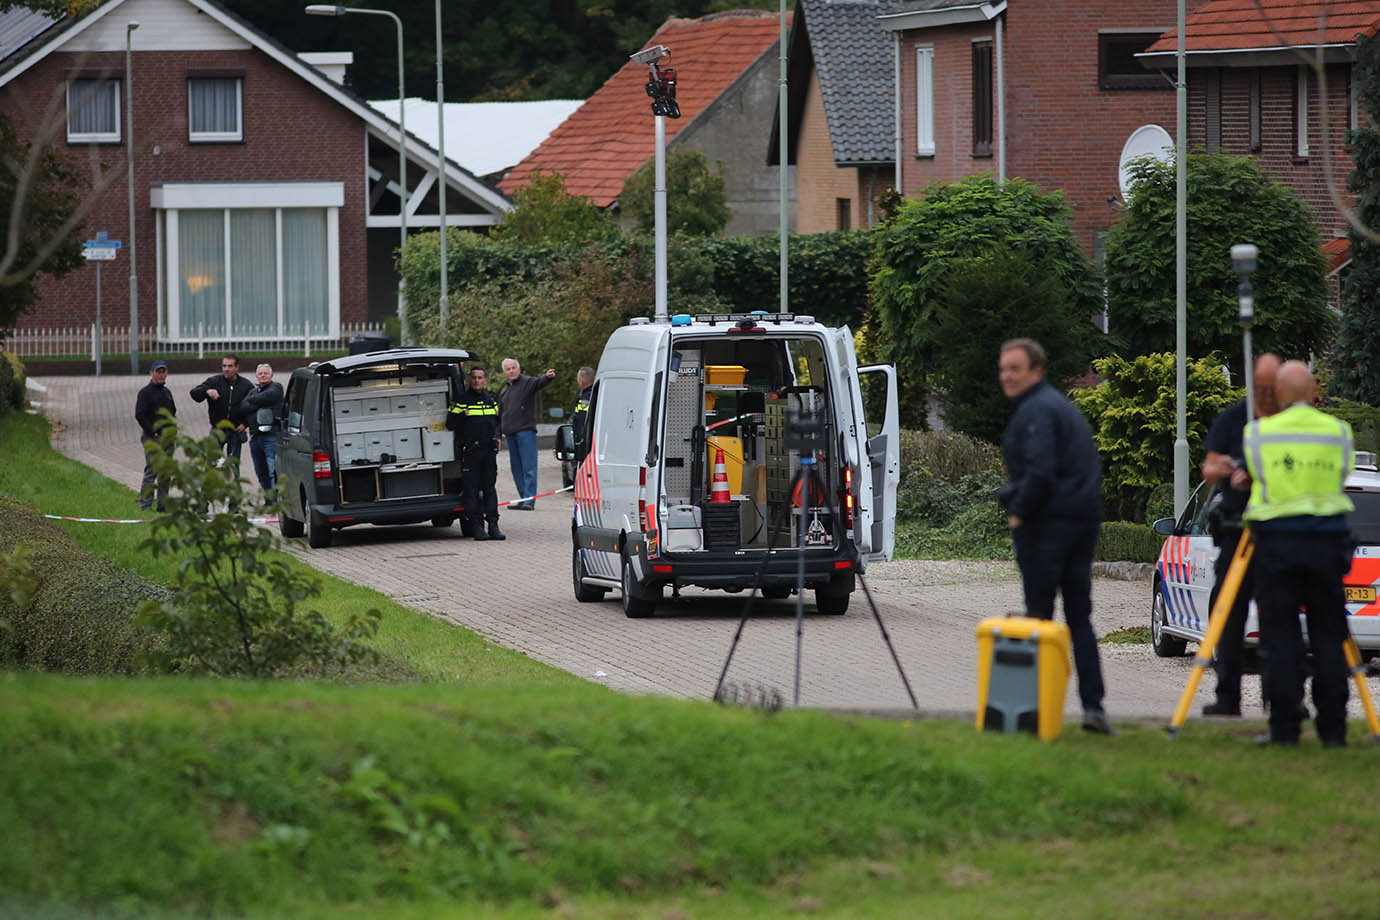 Policemen investigate on October 11, 2017, in Roosteren, near the site where a man was shot dead by